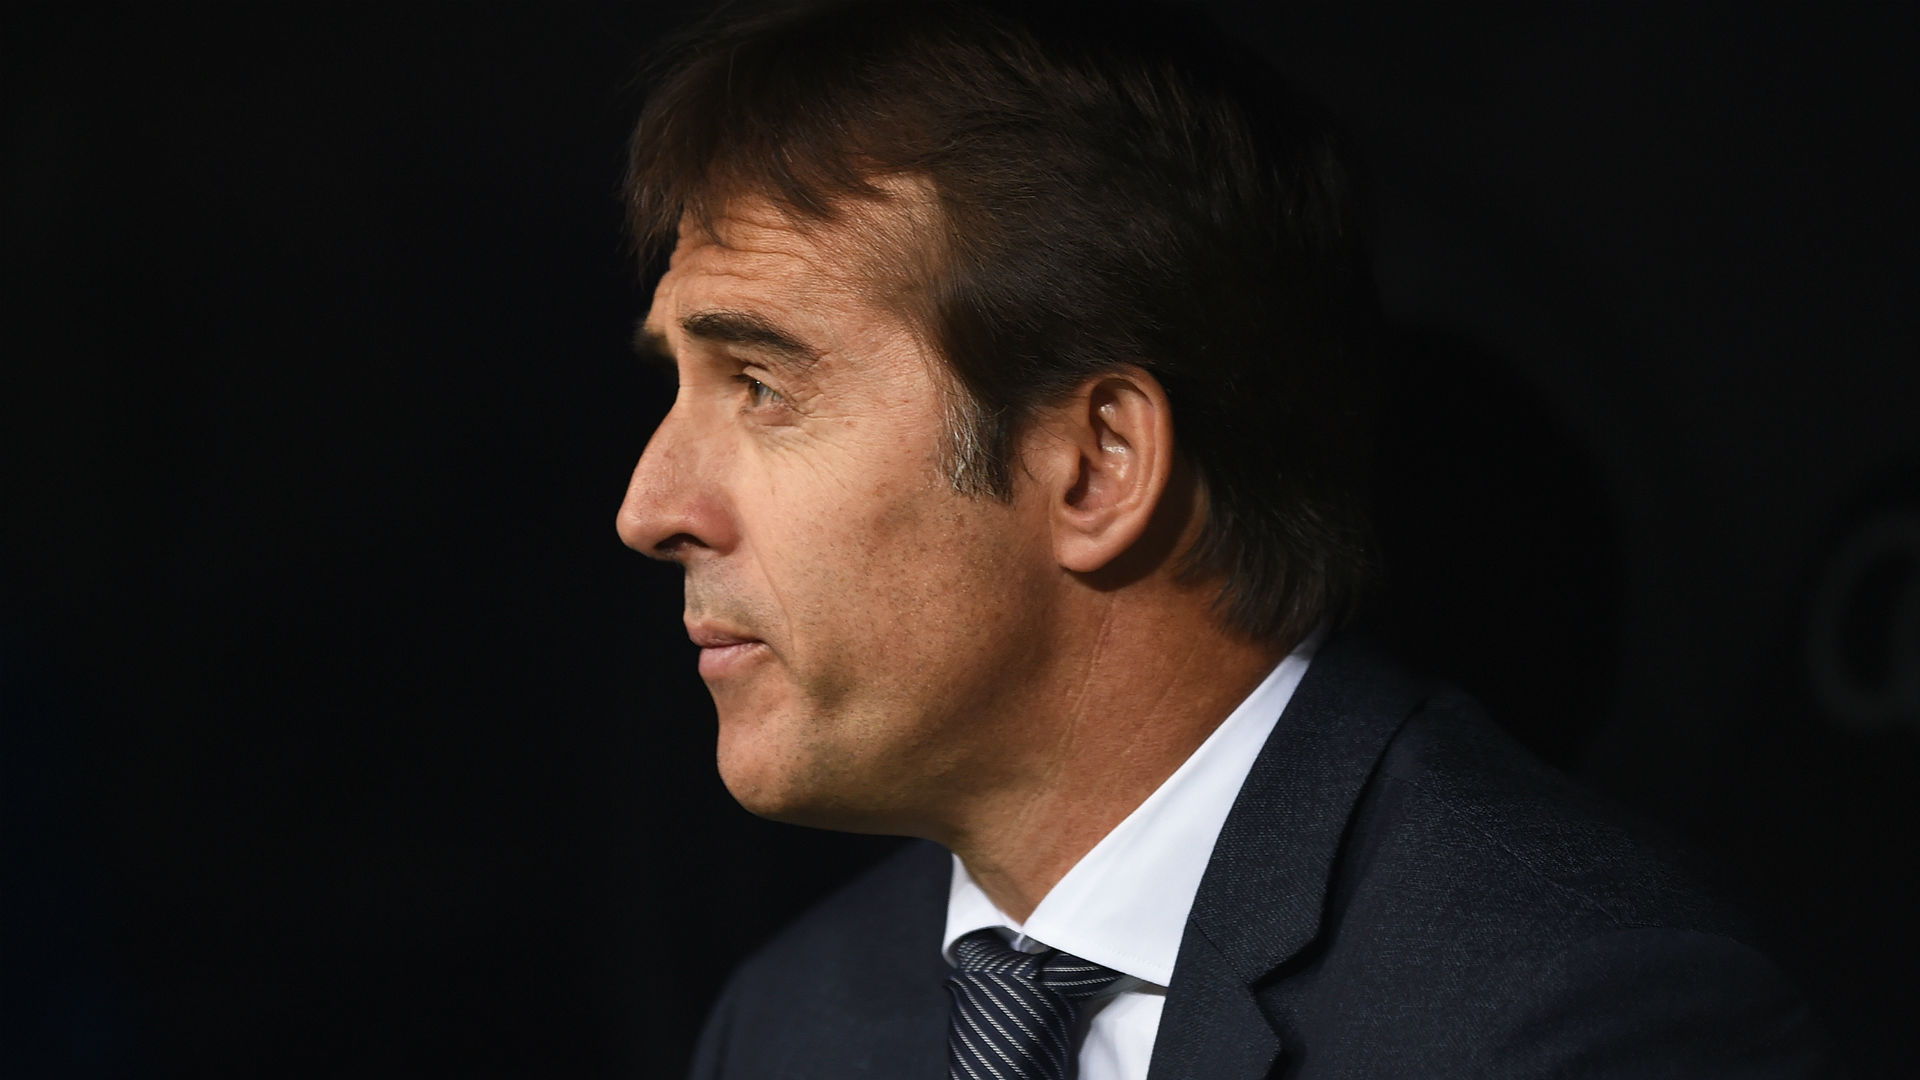 Real Madrid coach Lopetegui tightlipped on Keylor, Courtois keeper selection